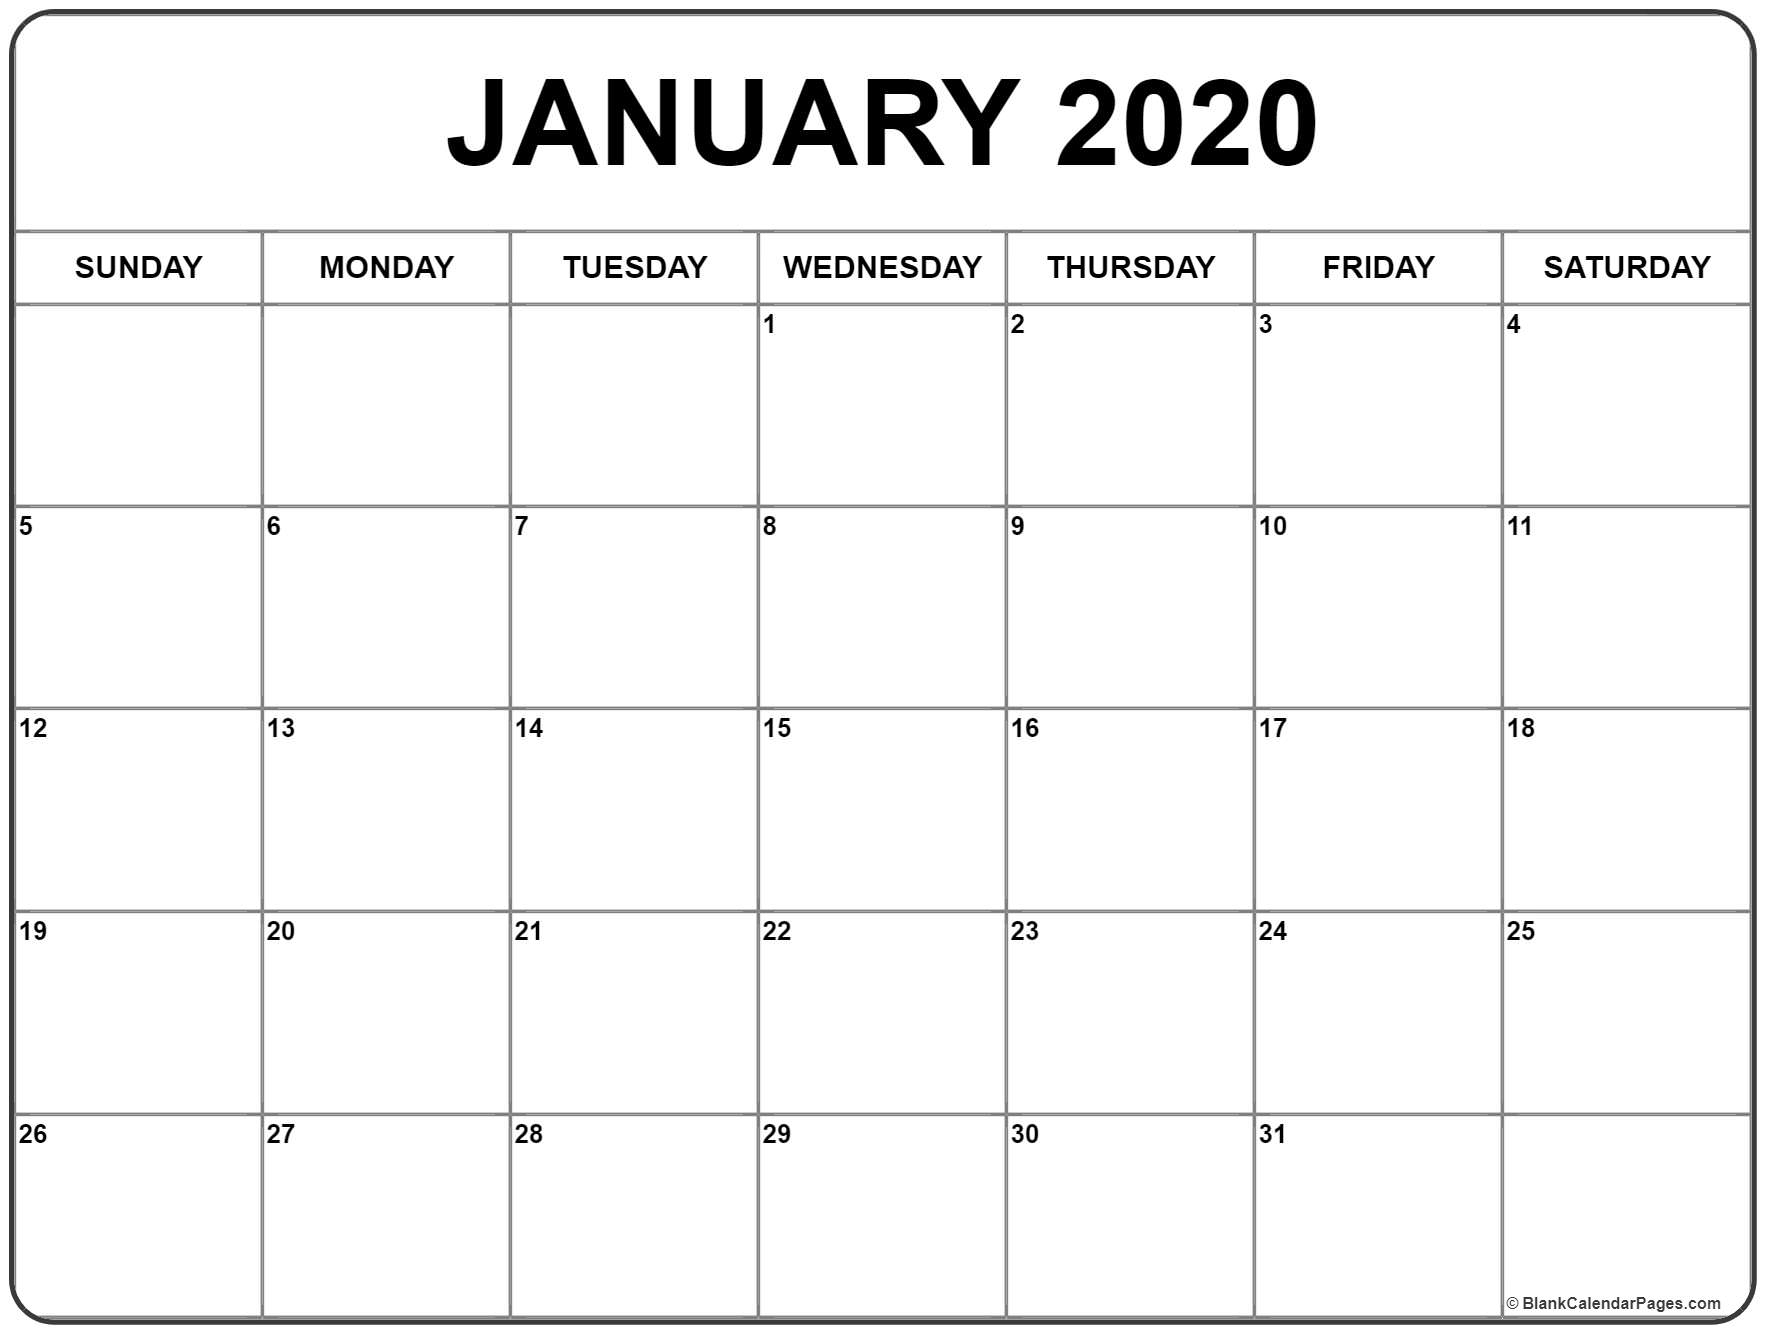 January 2020 Calendar | Free Printable Monthly Calendars regarding Imom 2020 Calendar